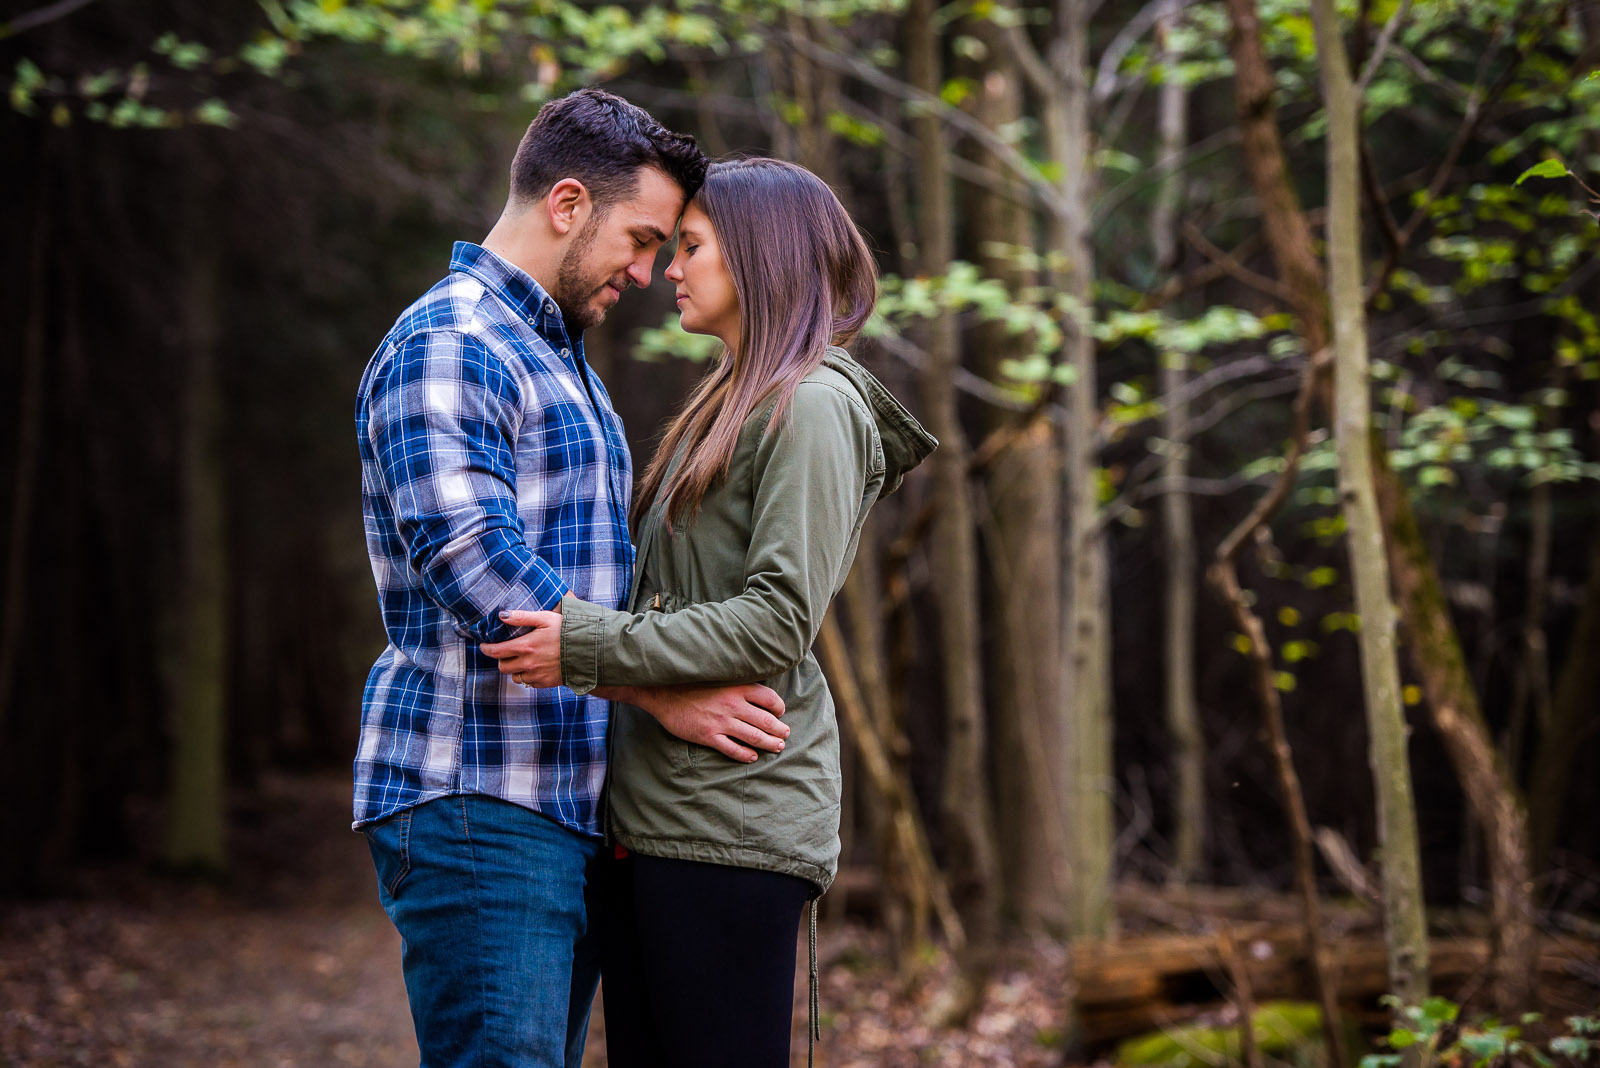 Eric_and_Christy_Photography_Blog_Stephanie_Nick_Engagement-21